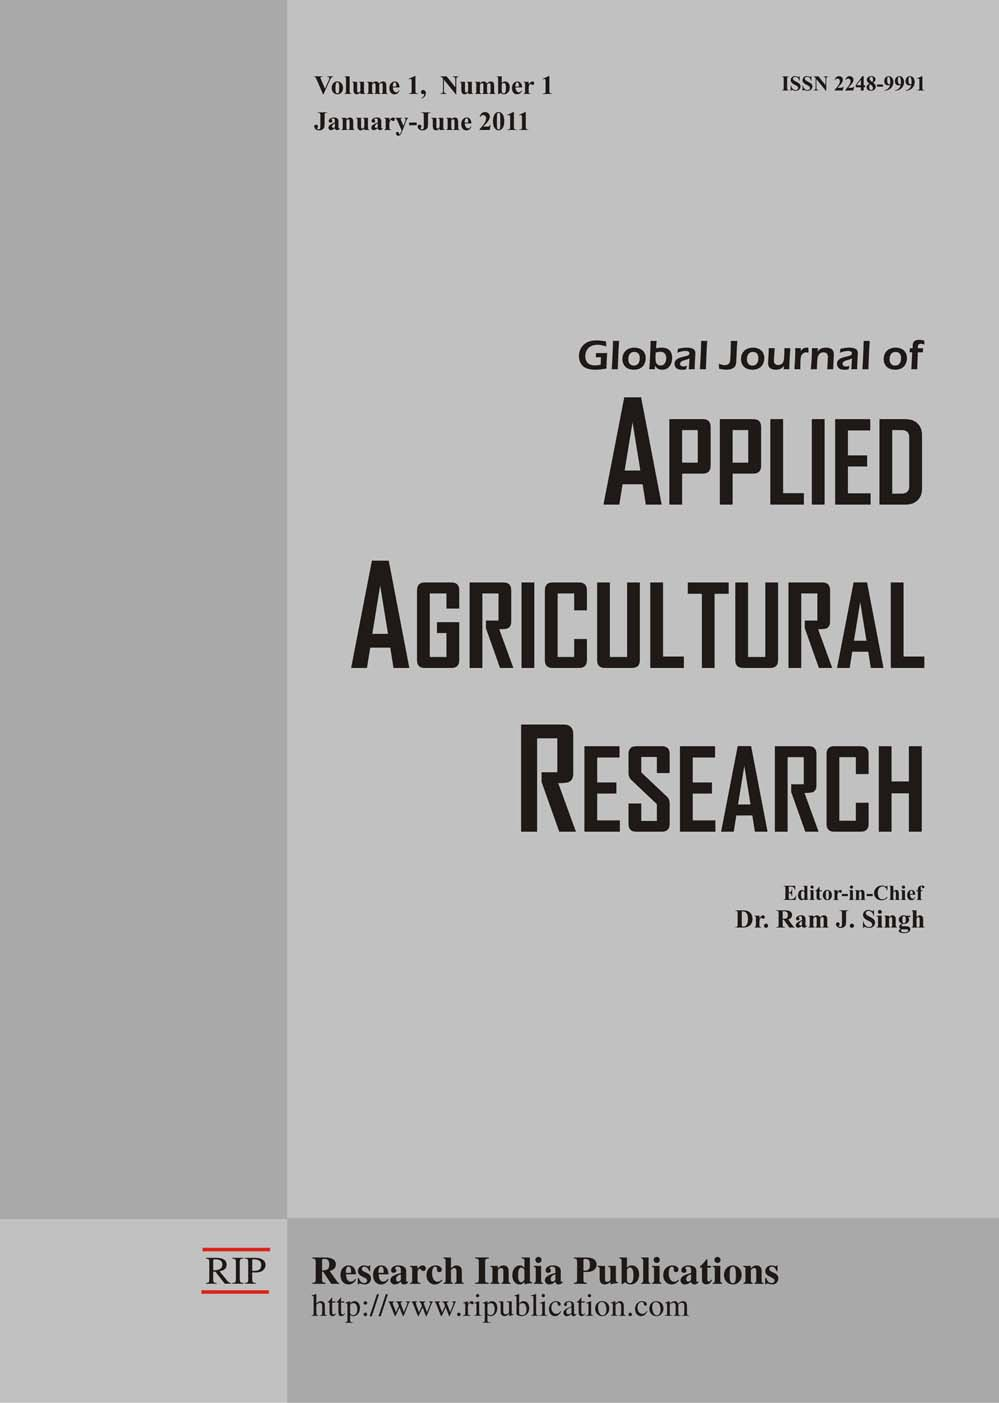 International Journal of Applied Research